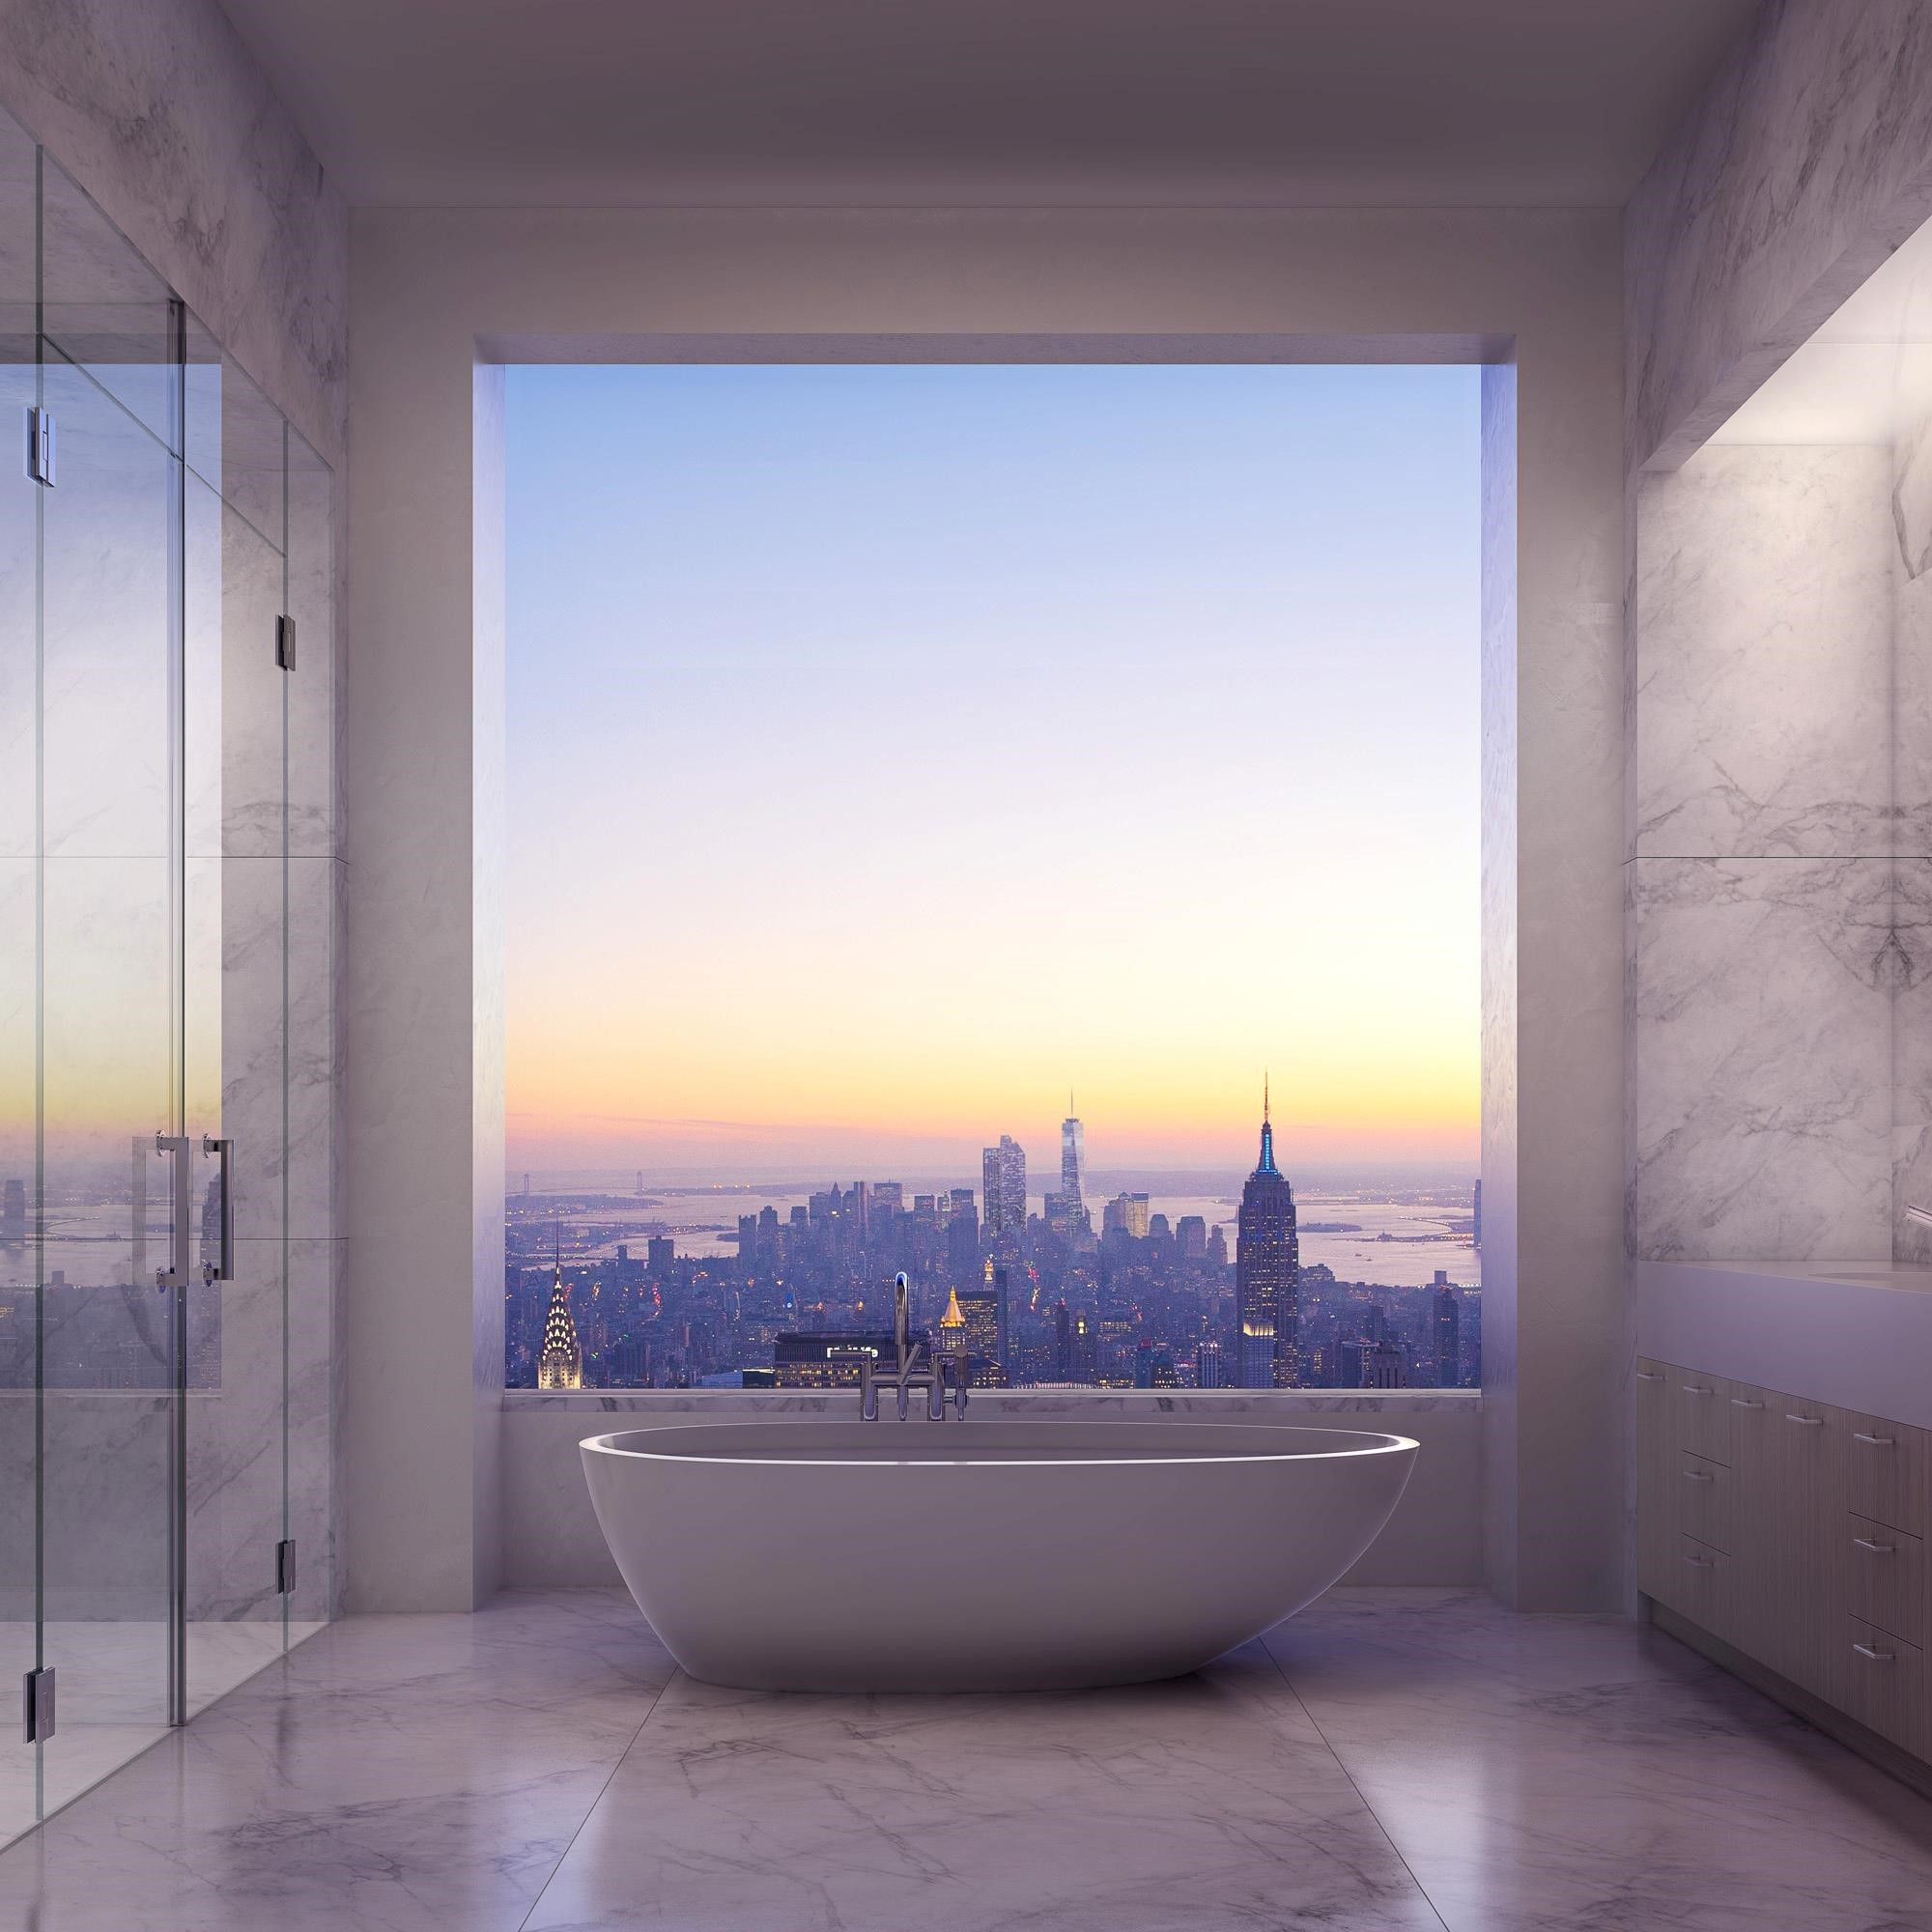 $95 Million Dollar Luxury Penthouse in New York-09